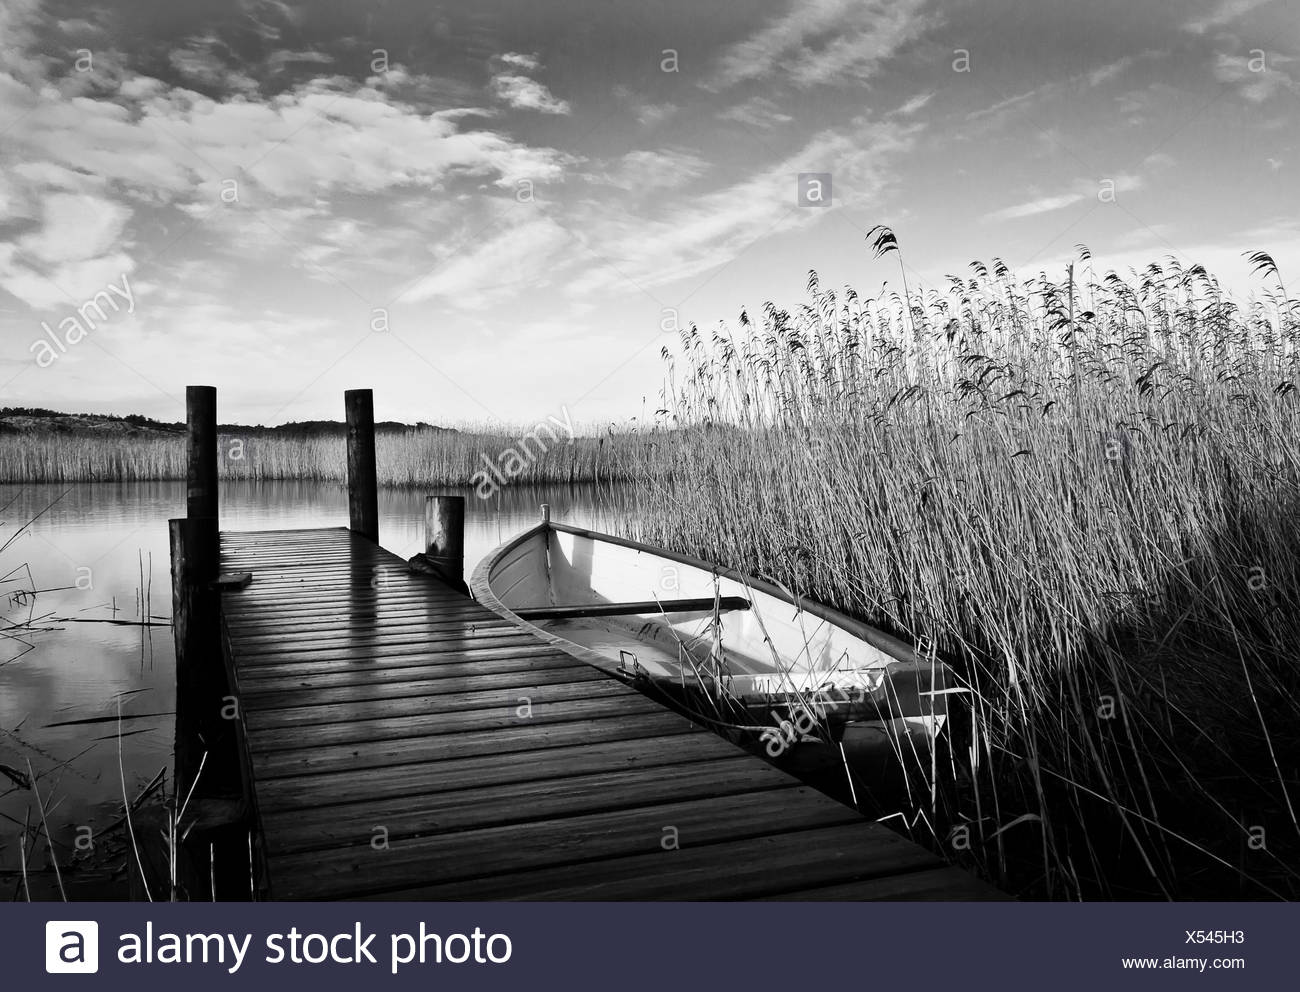 A boat on a little lake near Norre Nebel - Stock Image